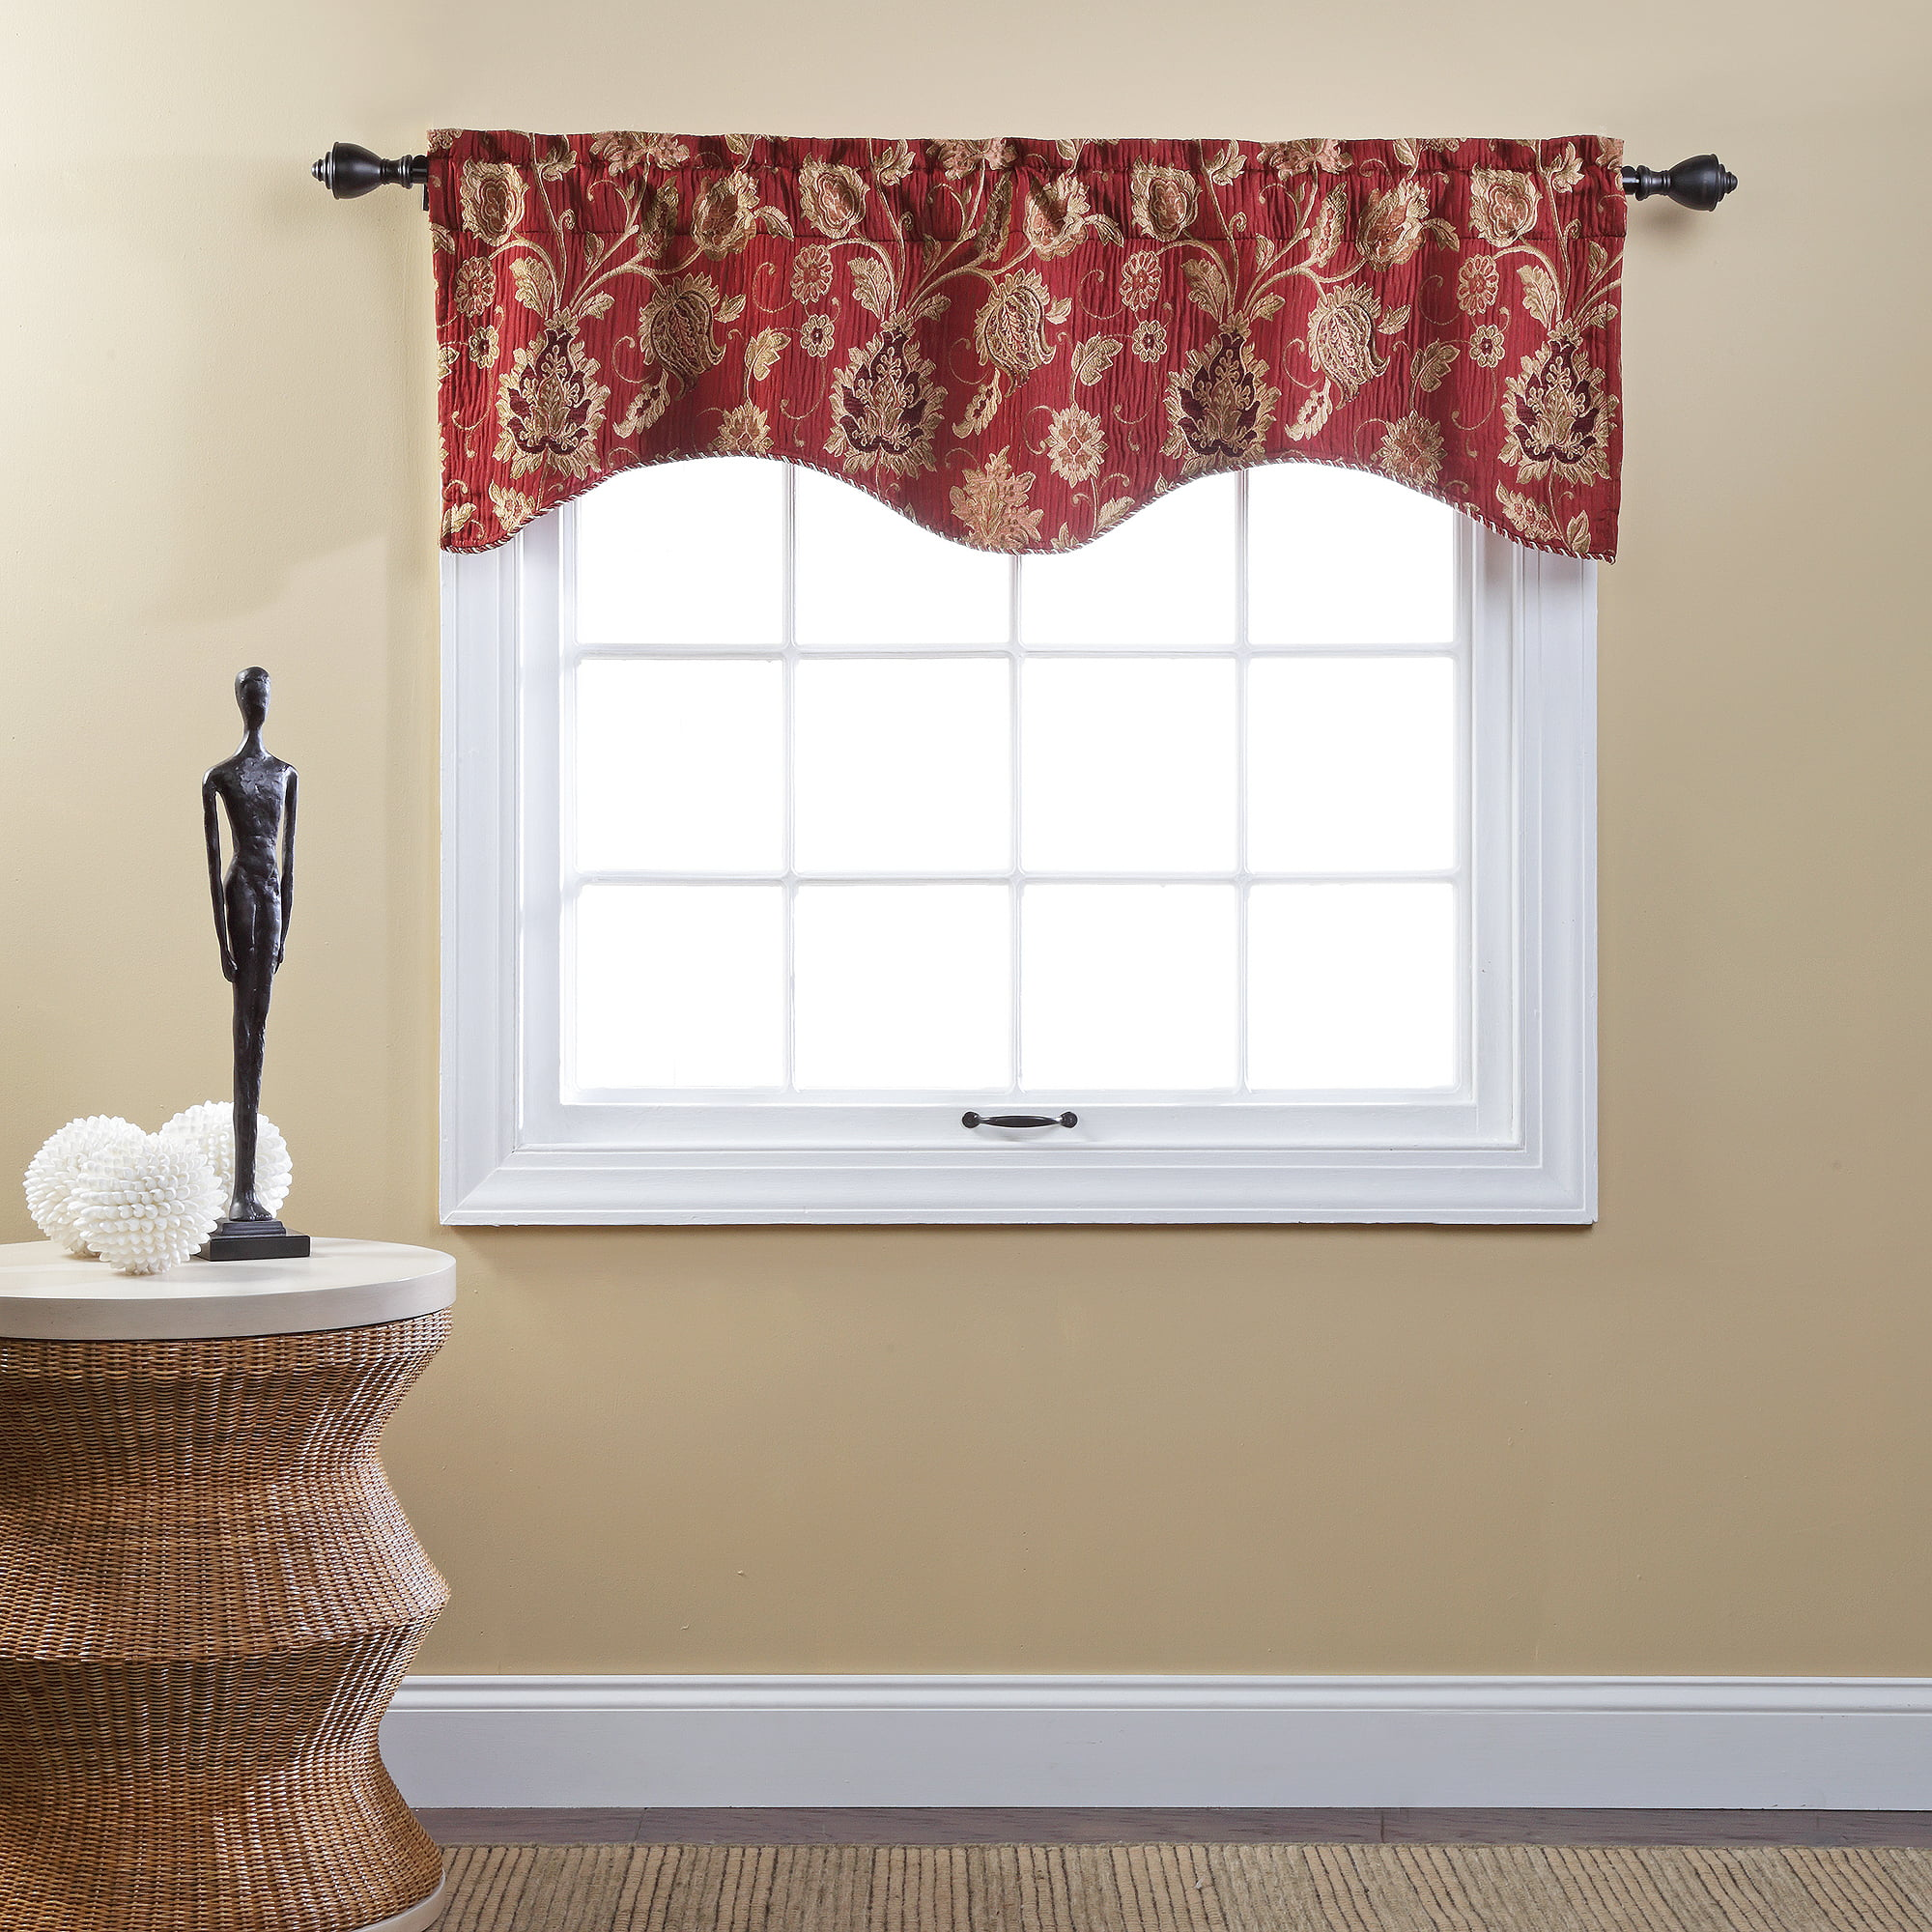 valances pdx valance wayfair owl curtains ltd windows in knight for saturday spice window treatments